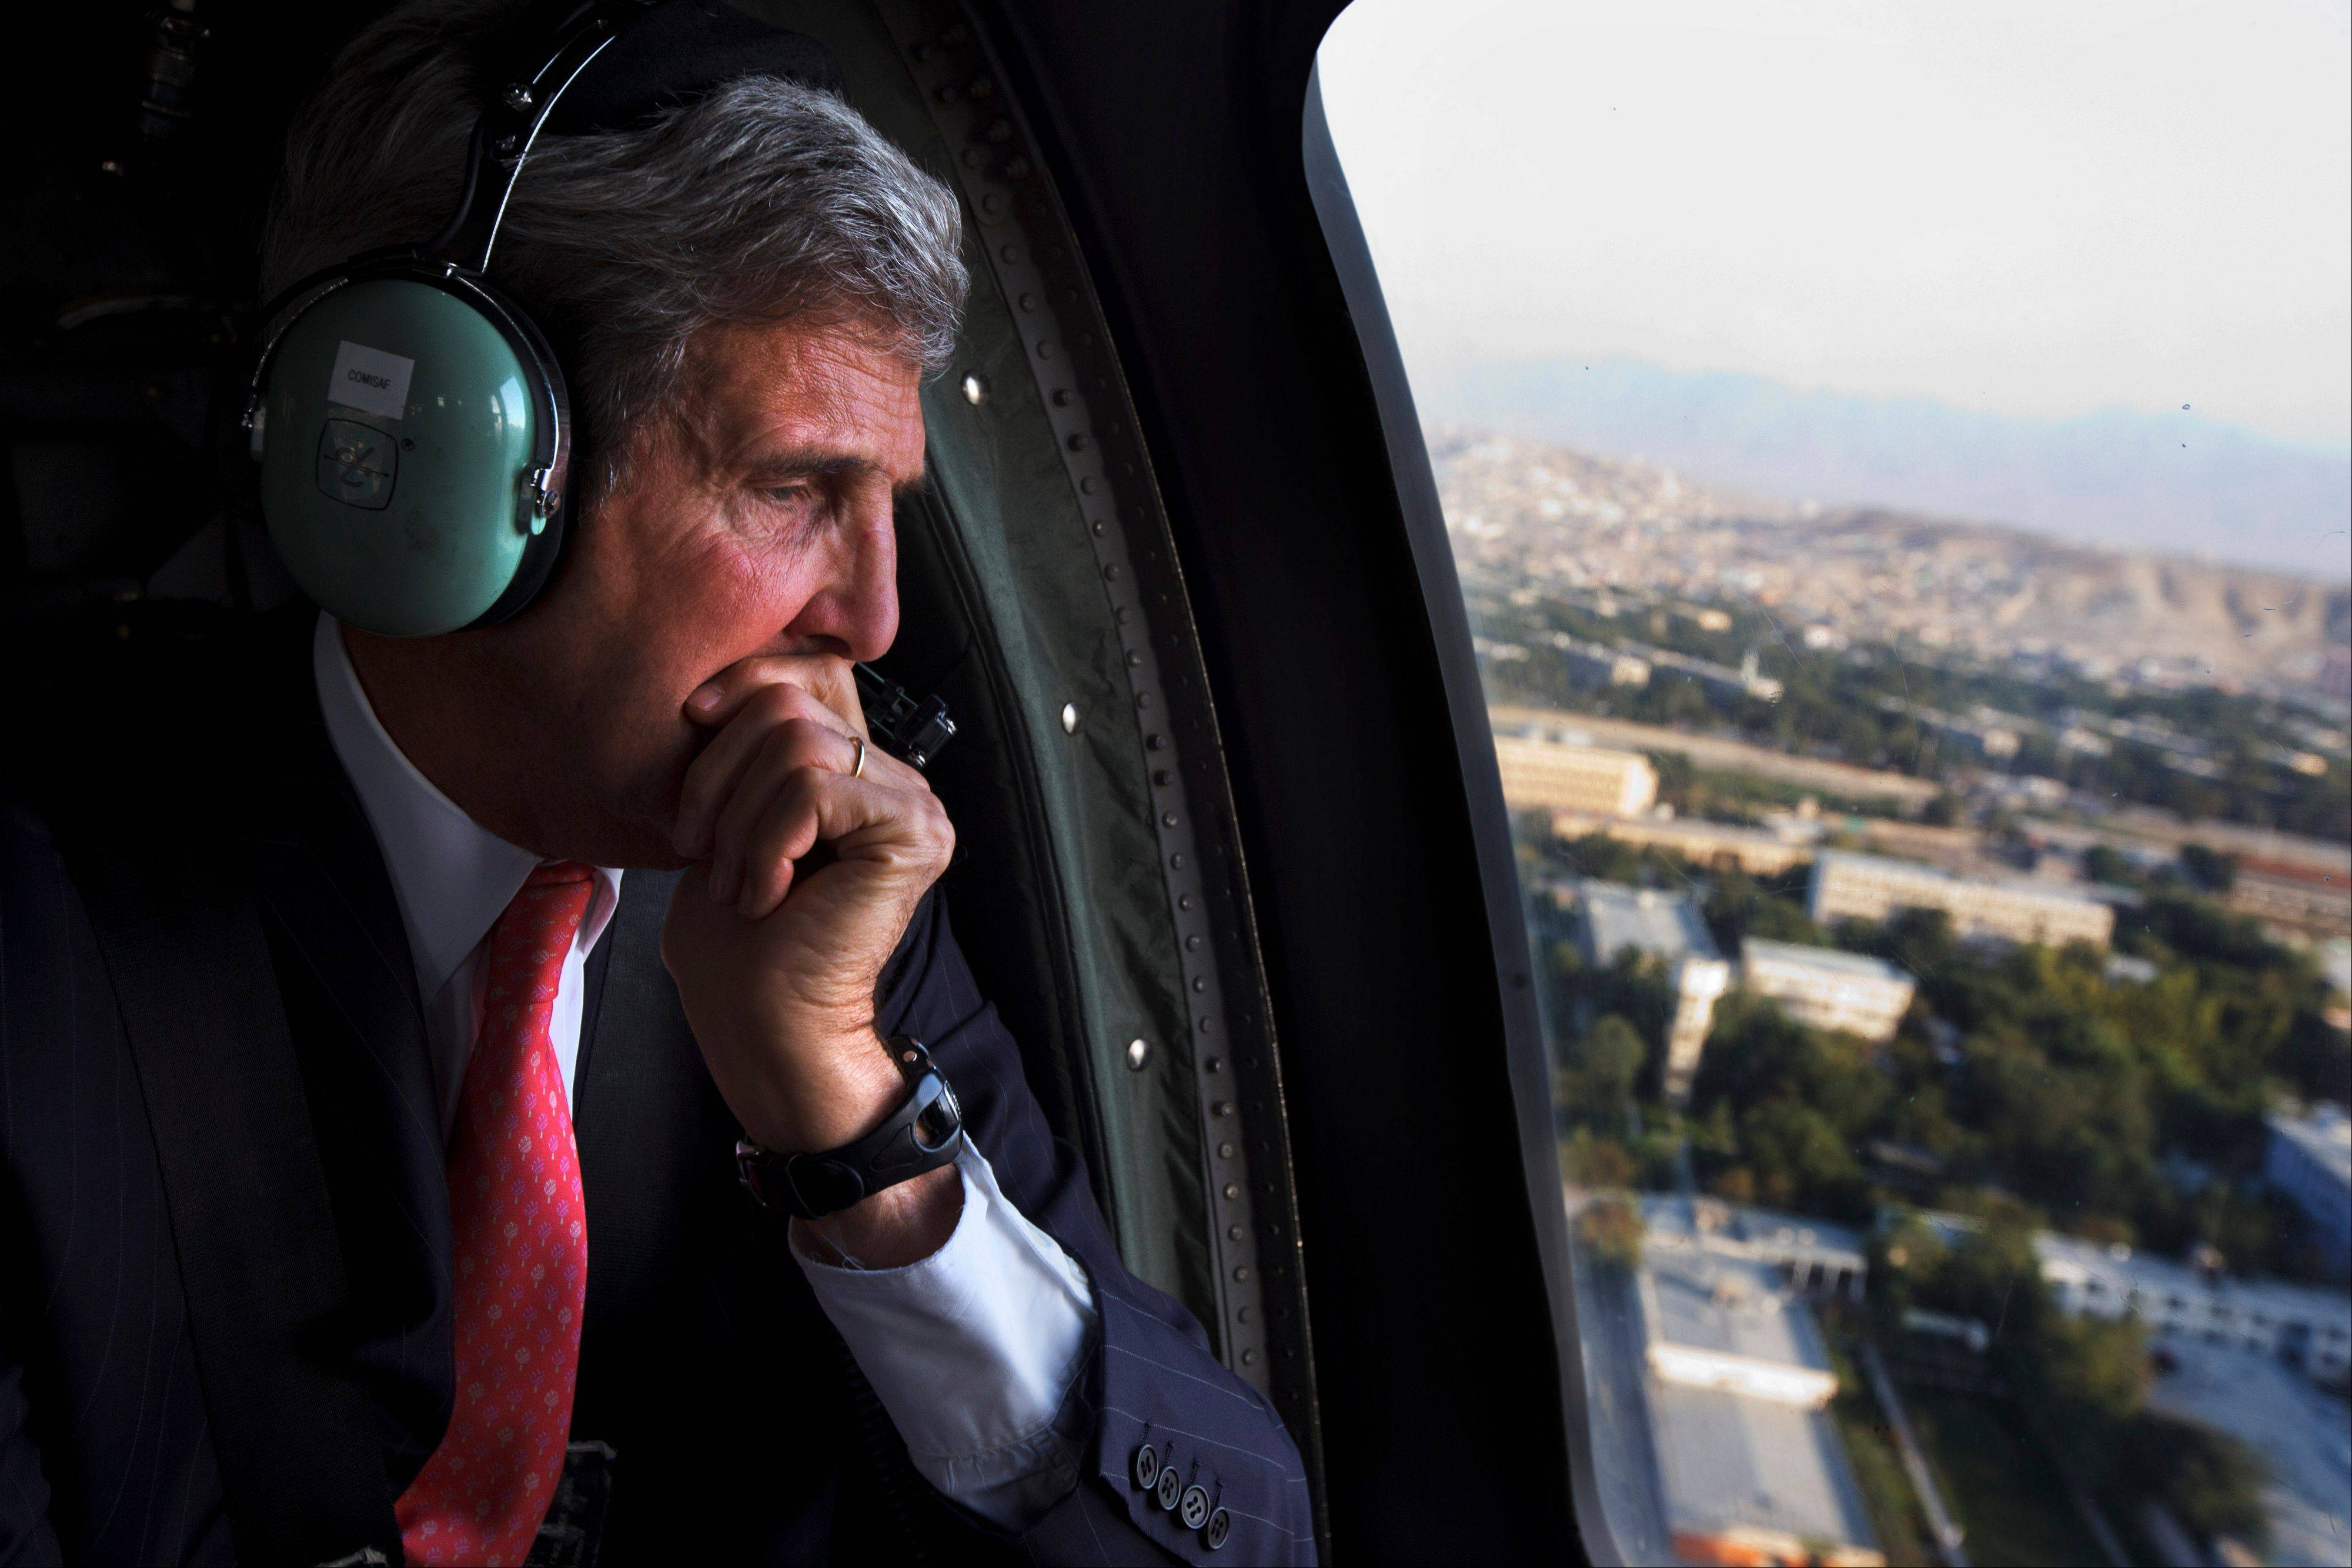 Associated Press/Oct. 11, 2013 Secretary of State John Kerry looks out the window en route to the ISAF headquarters after an unannounced visit to Kabul, Afghanistan. President Barack Obama and Kerry are trying to quell international anger over the latest classified disclosures about NSA tactics.